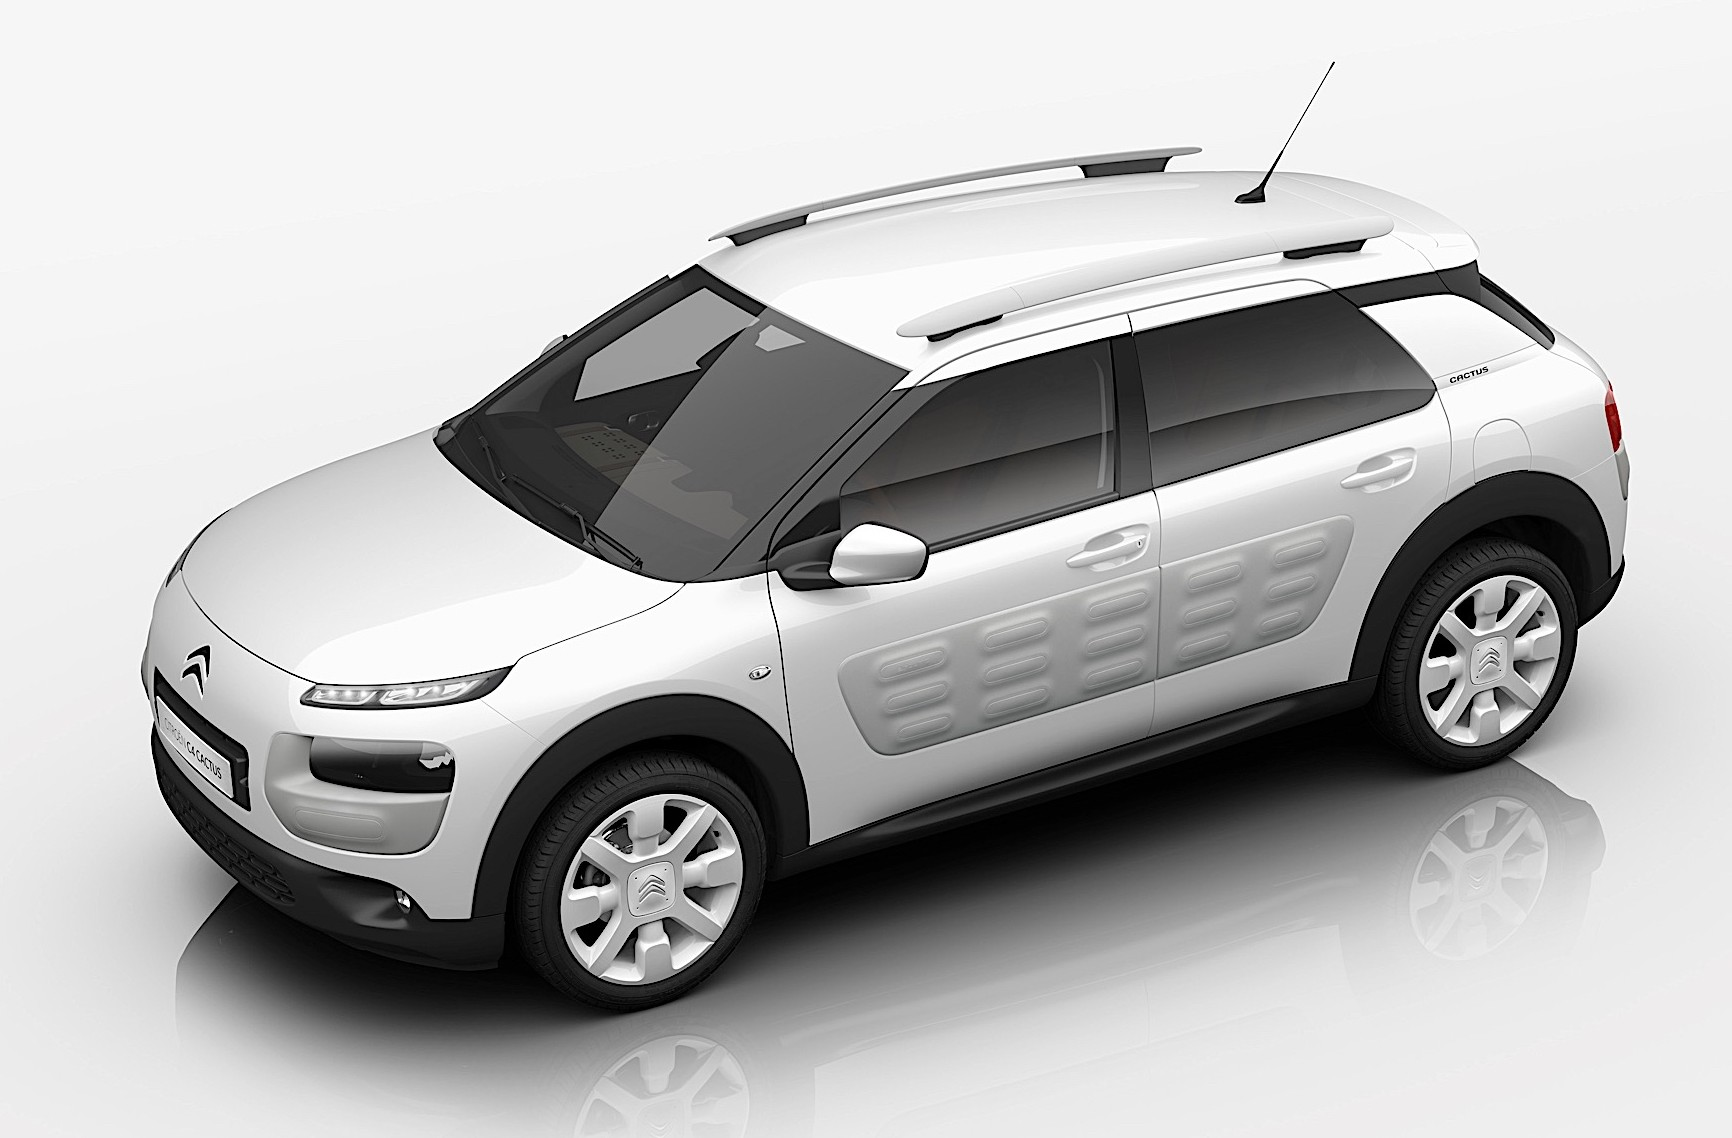 citroen c4 cactus crash tested gets 4 euro ncap stars autoevolution. Black Bedroom Furniture Sets. Home Design Ideas